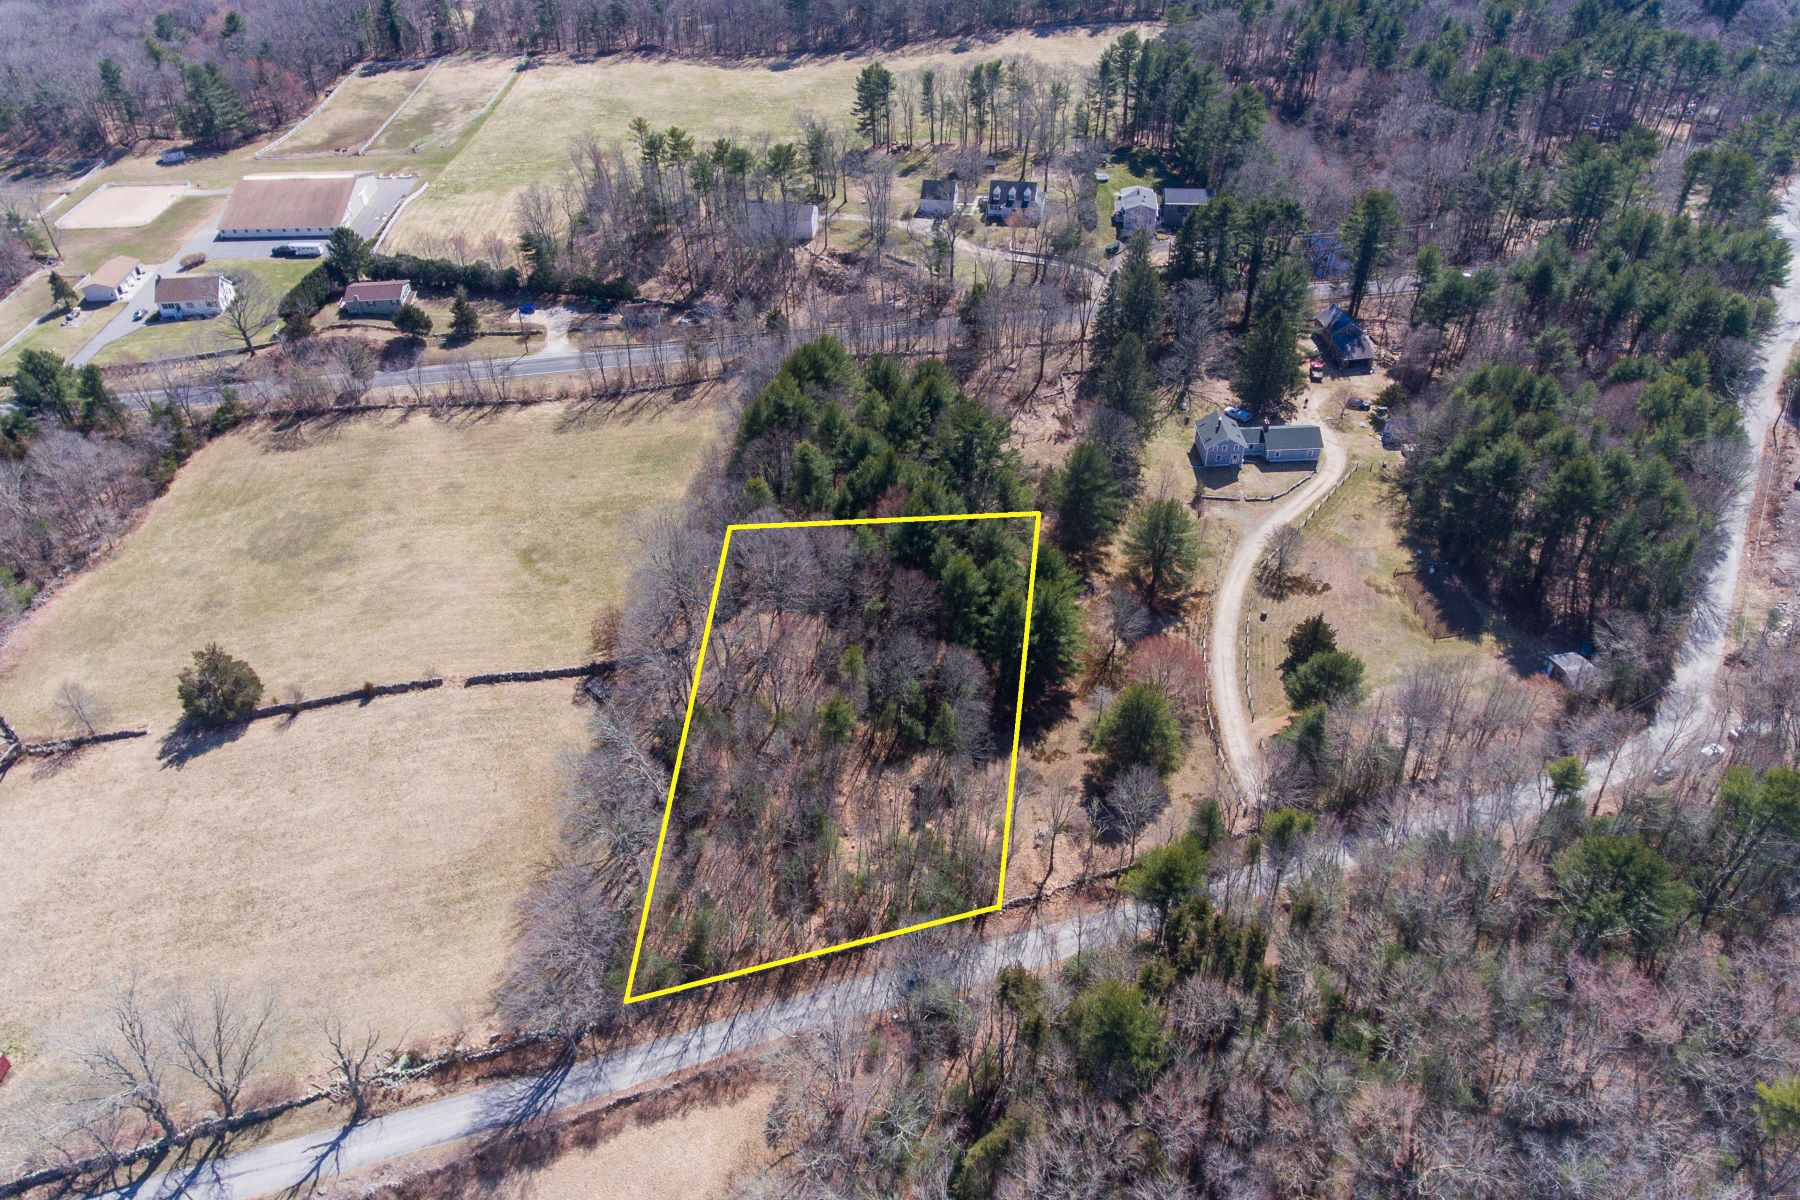 Single Family Homes for Sale at Beautiful 1.44 Acre Lot Across From Avalonia Land Trust 114 Stillman Road North Stonington, Connecticut 06359 United States